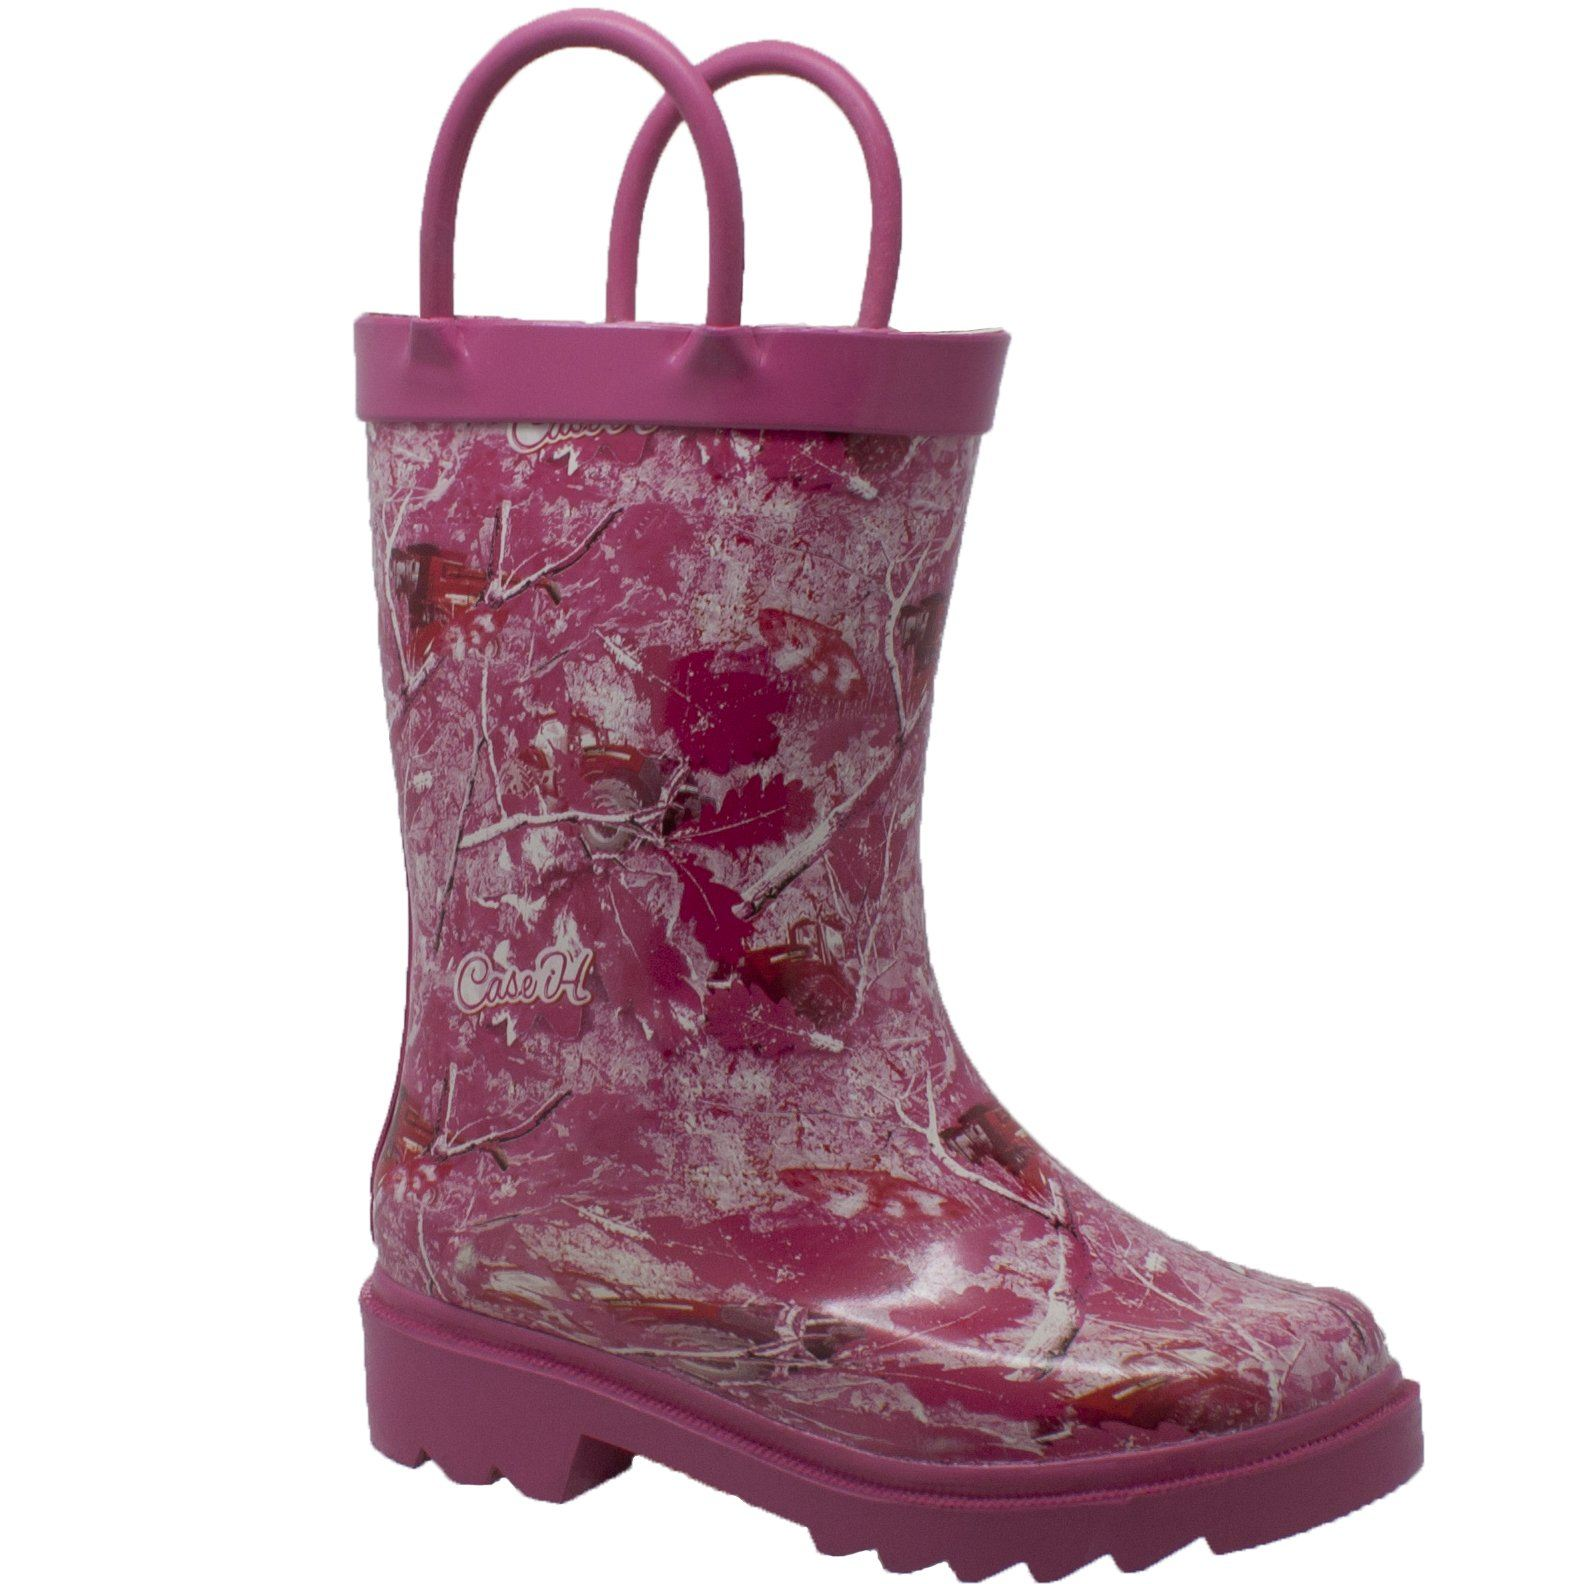 Children's Boots - Toddler's Pink Camo Rubber Boots